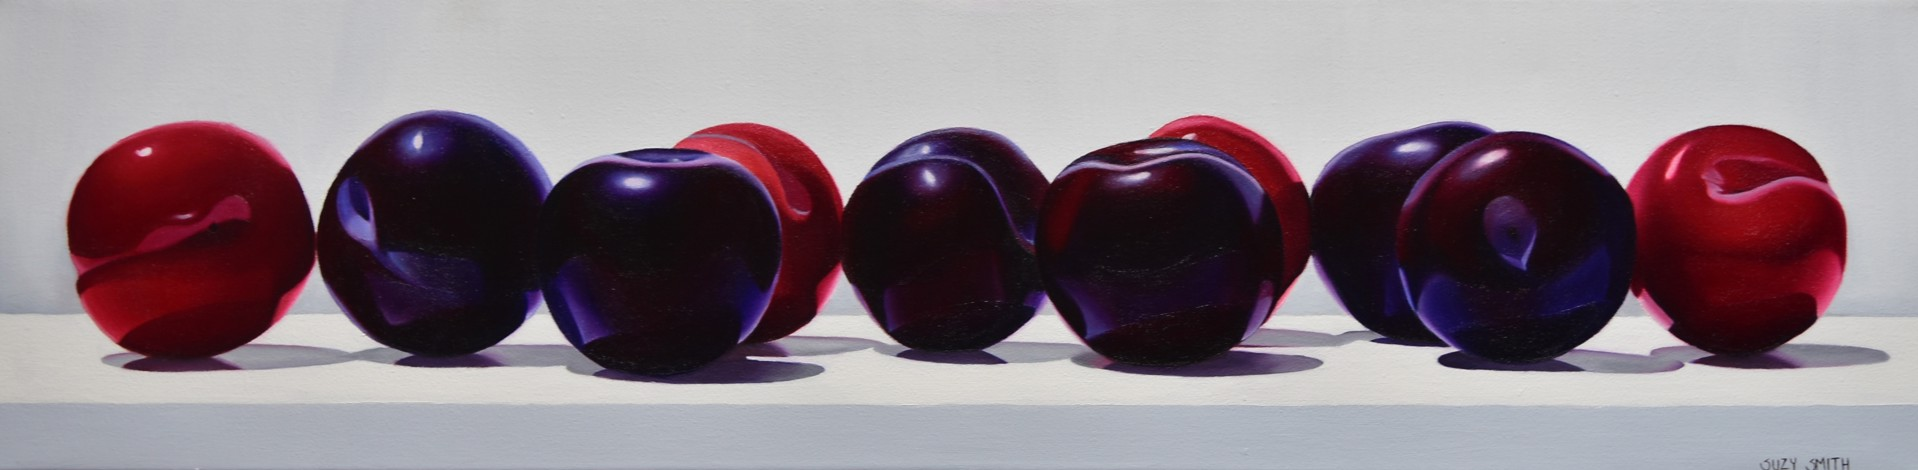 10 Plums by Suzy Smith